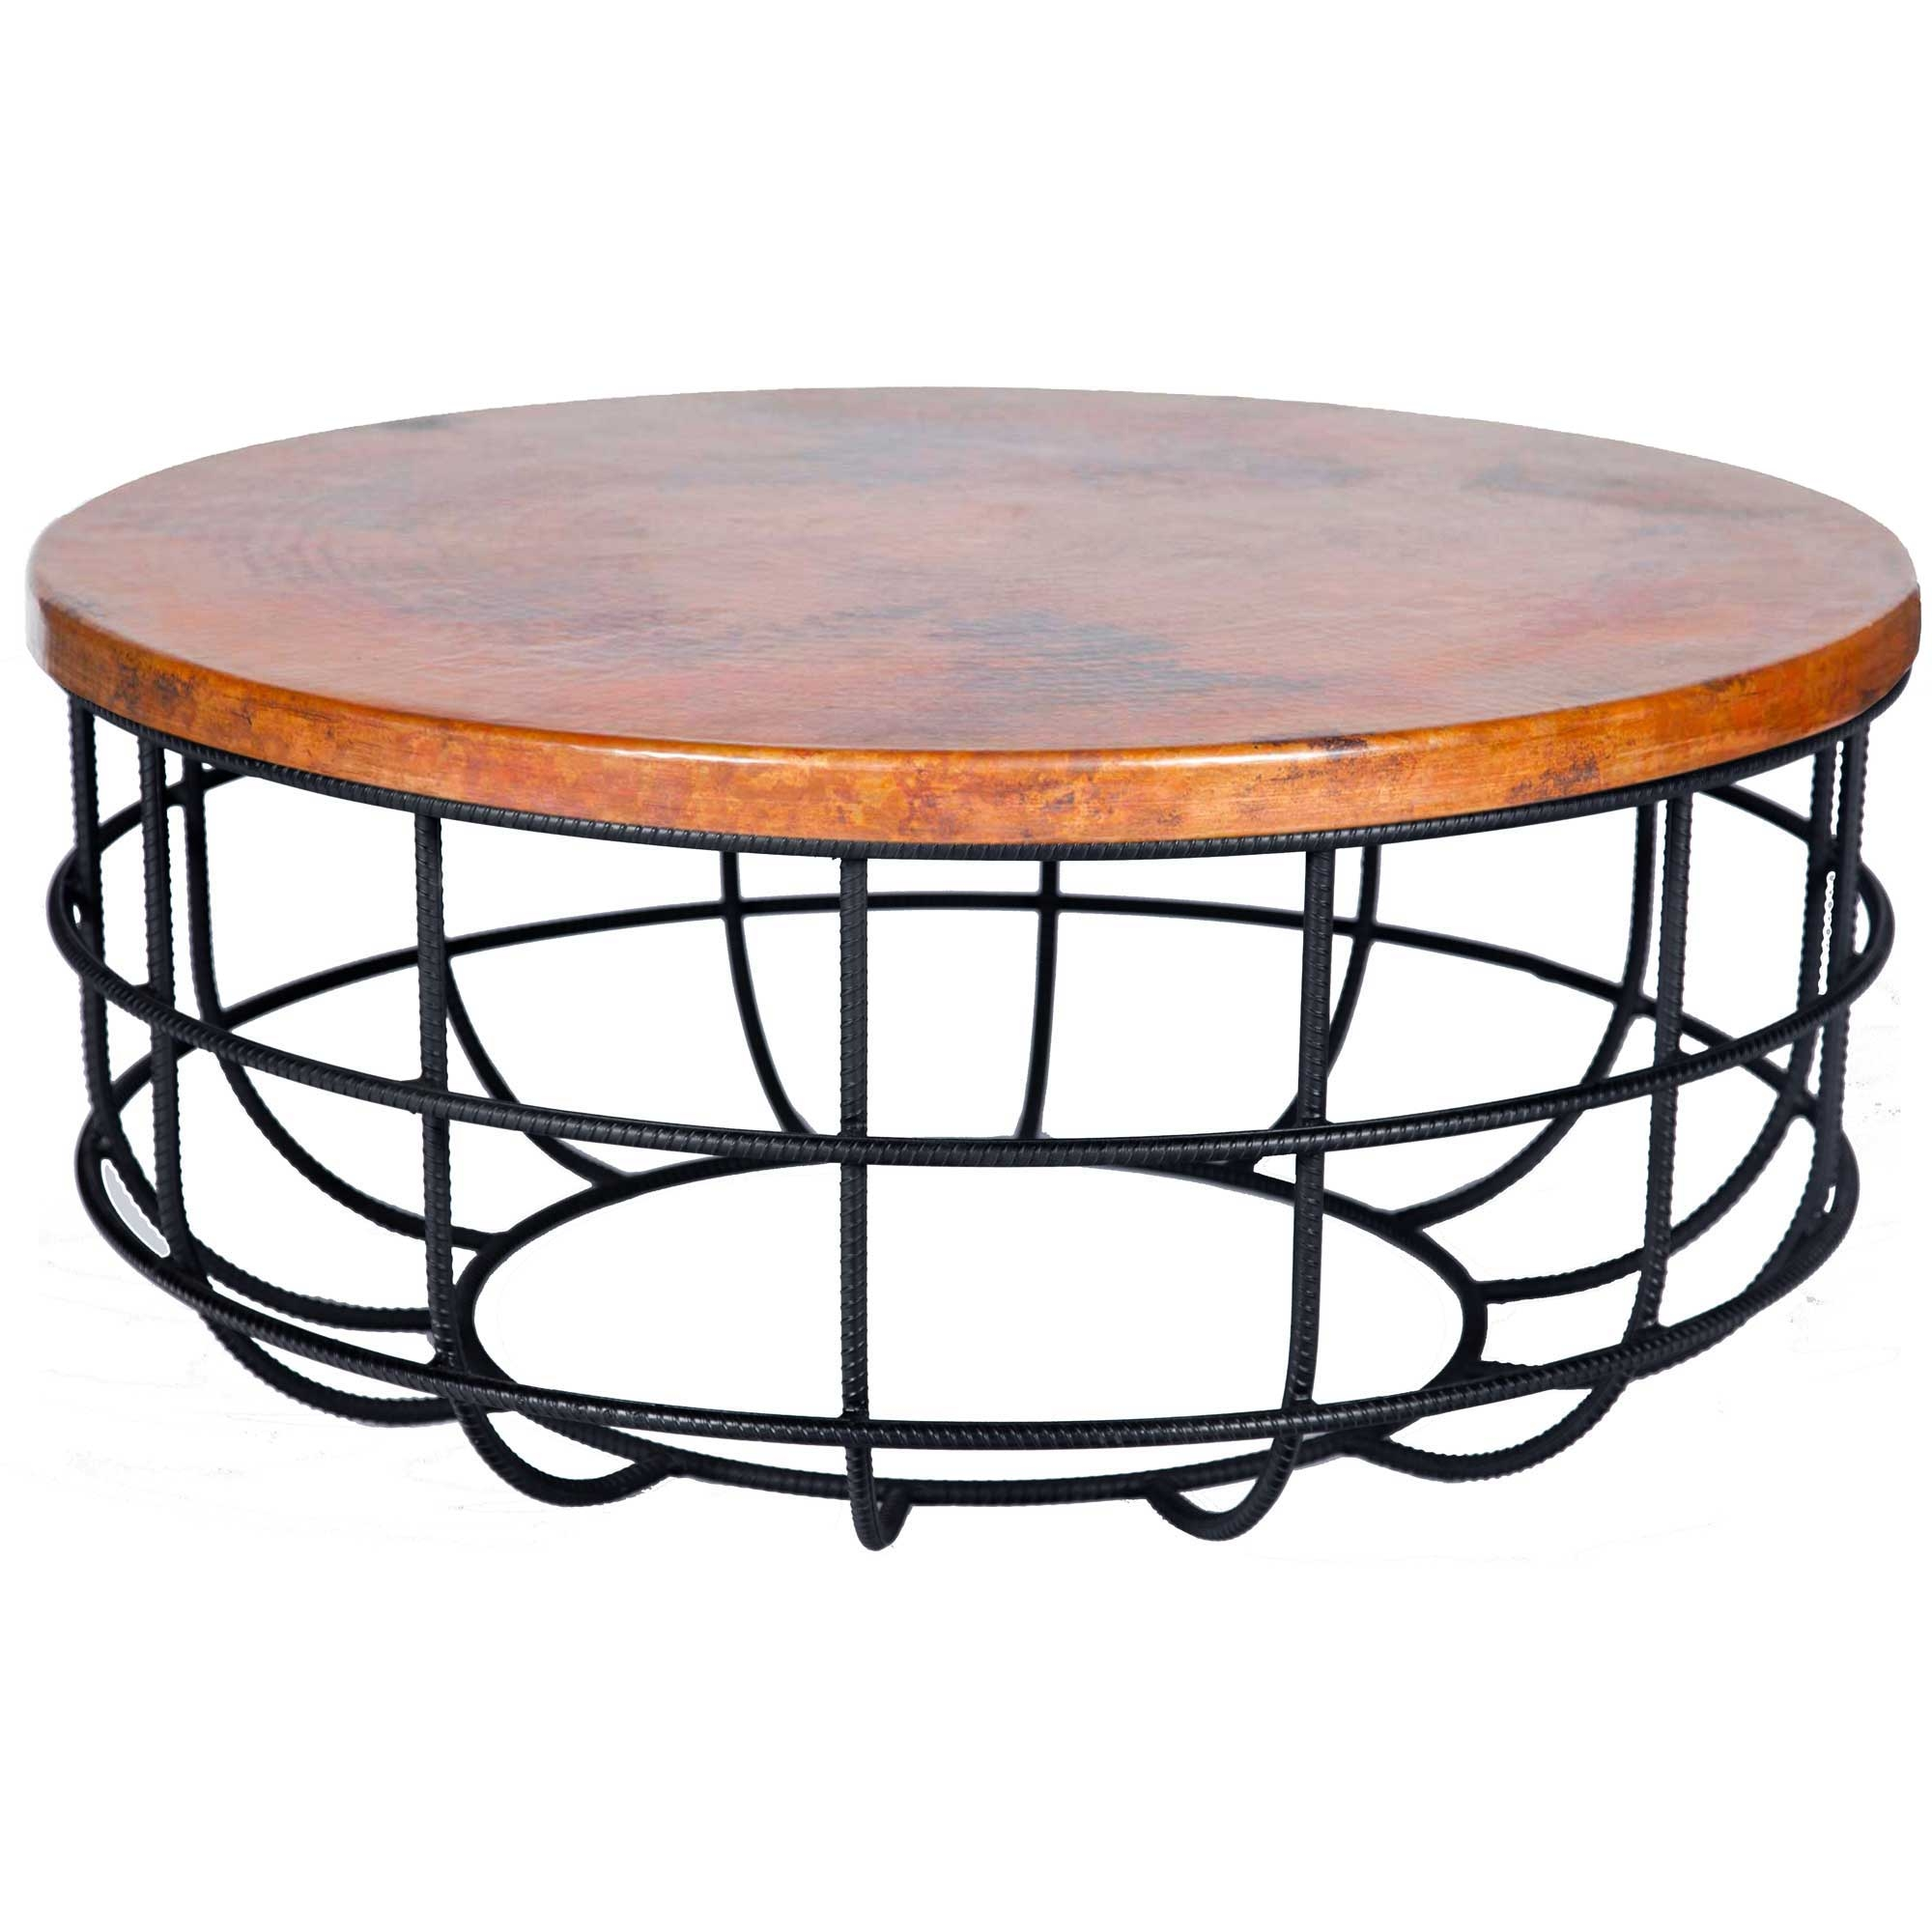 Coffee Table With Wrought Iron Base And Round Hammered Copper Larger Photo